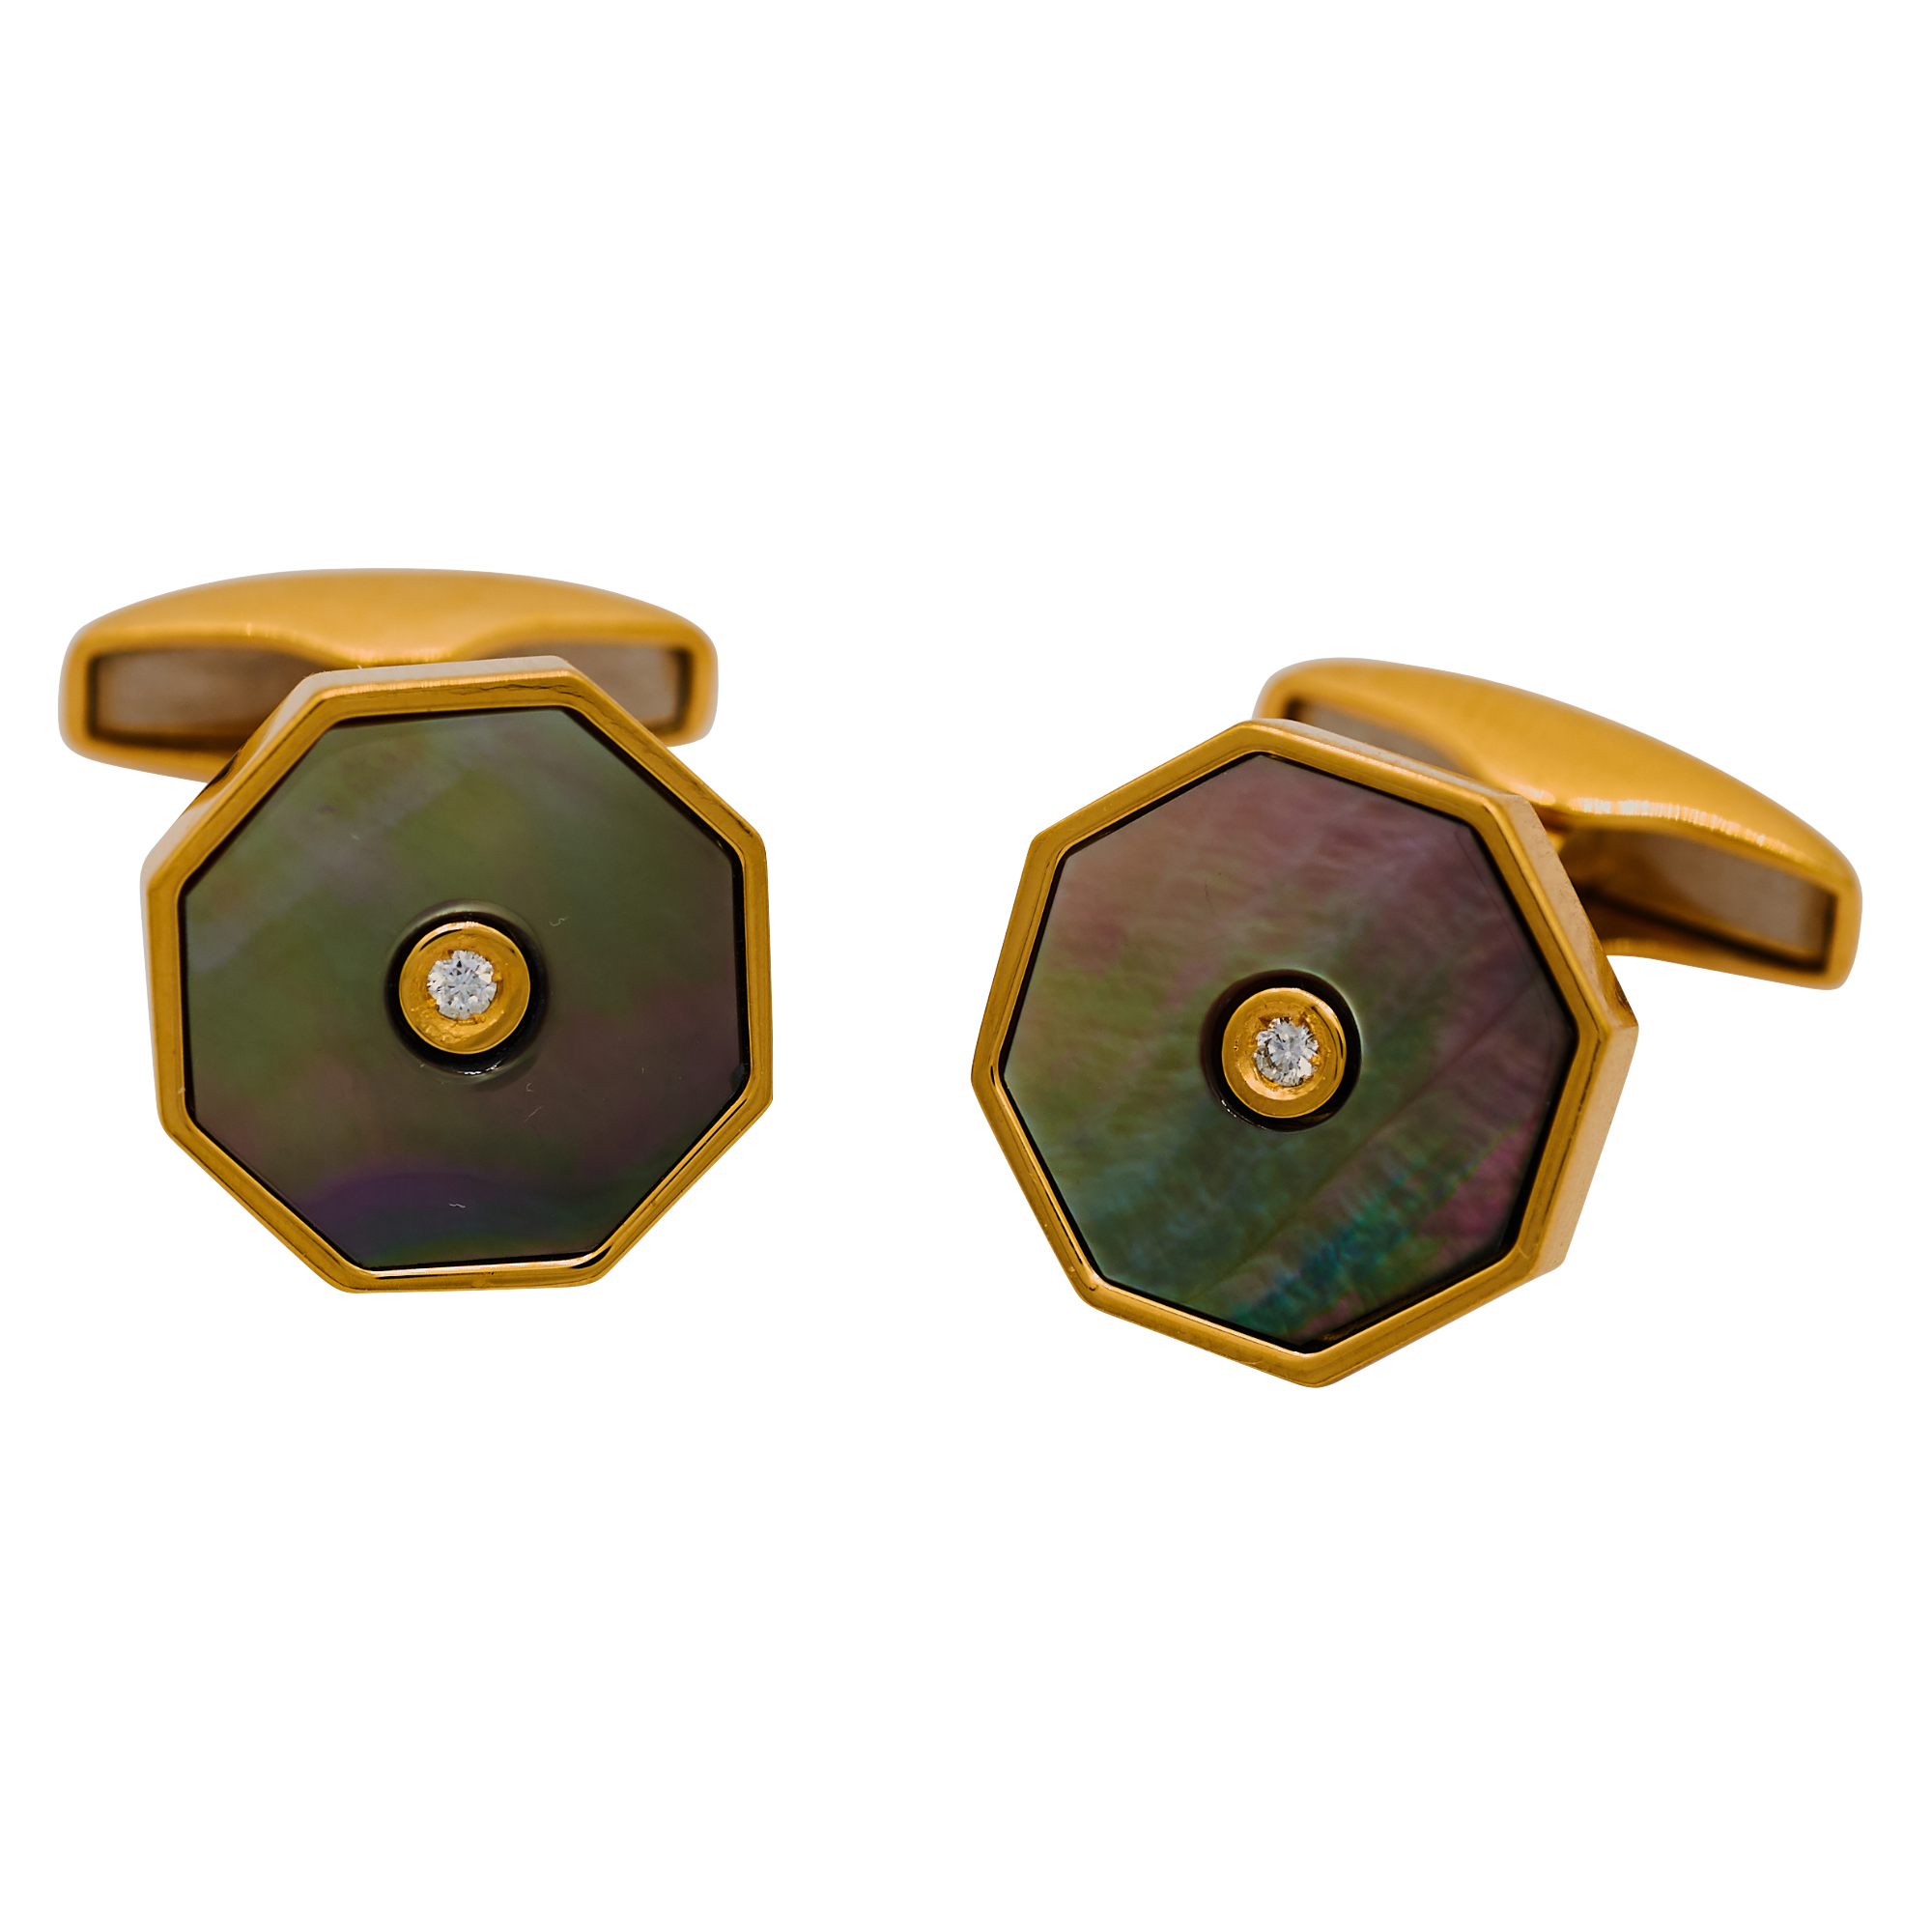 Sterling Silver Gilt Hexagon Shaped Black Mother of Pearl Diamond Centre Cufflinks